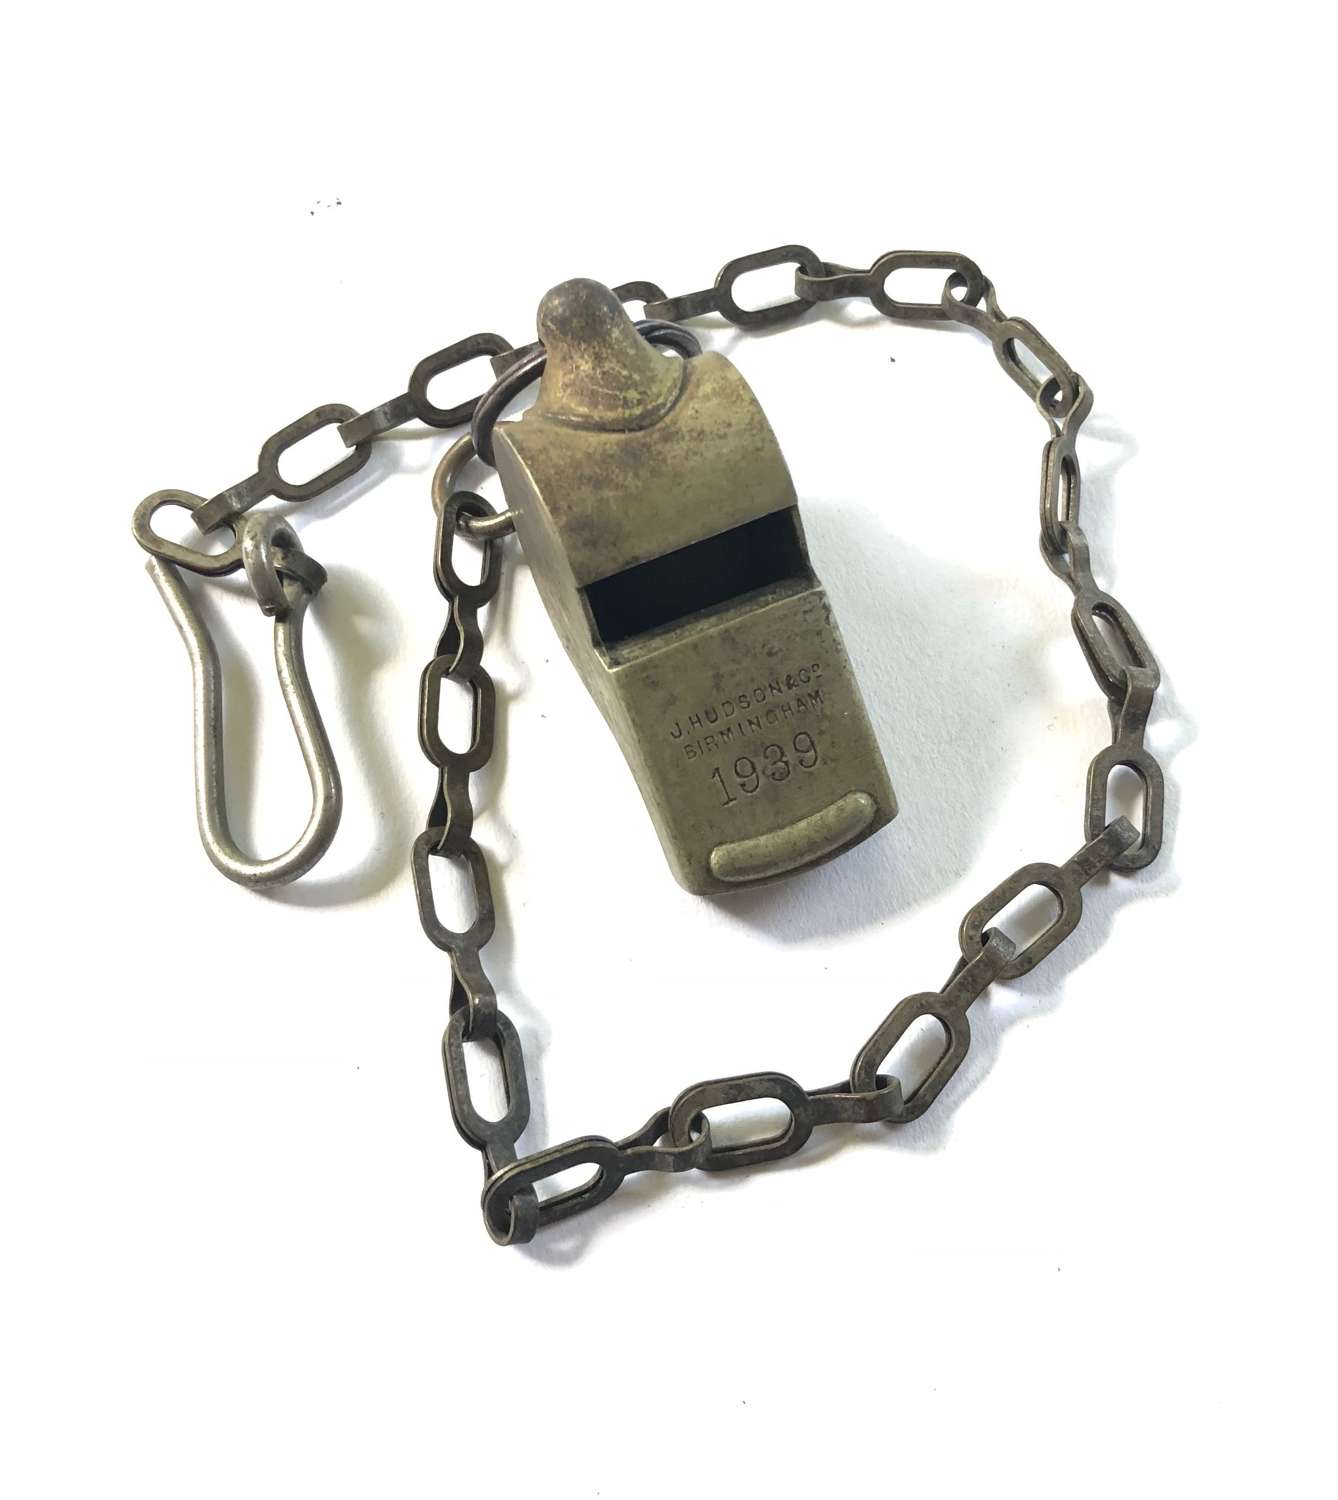 WW2 1939 Battle of France Whistle & Chain by Hudson & Co.